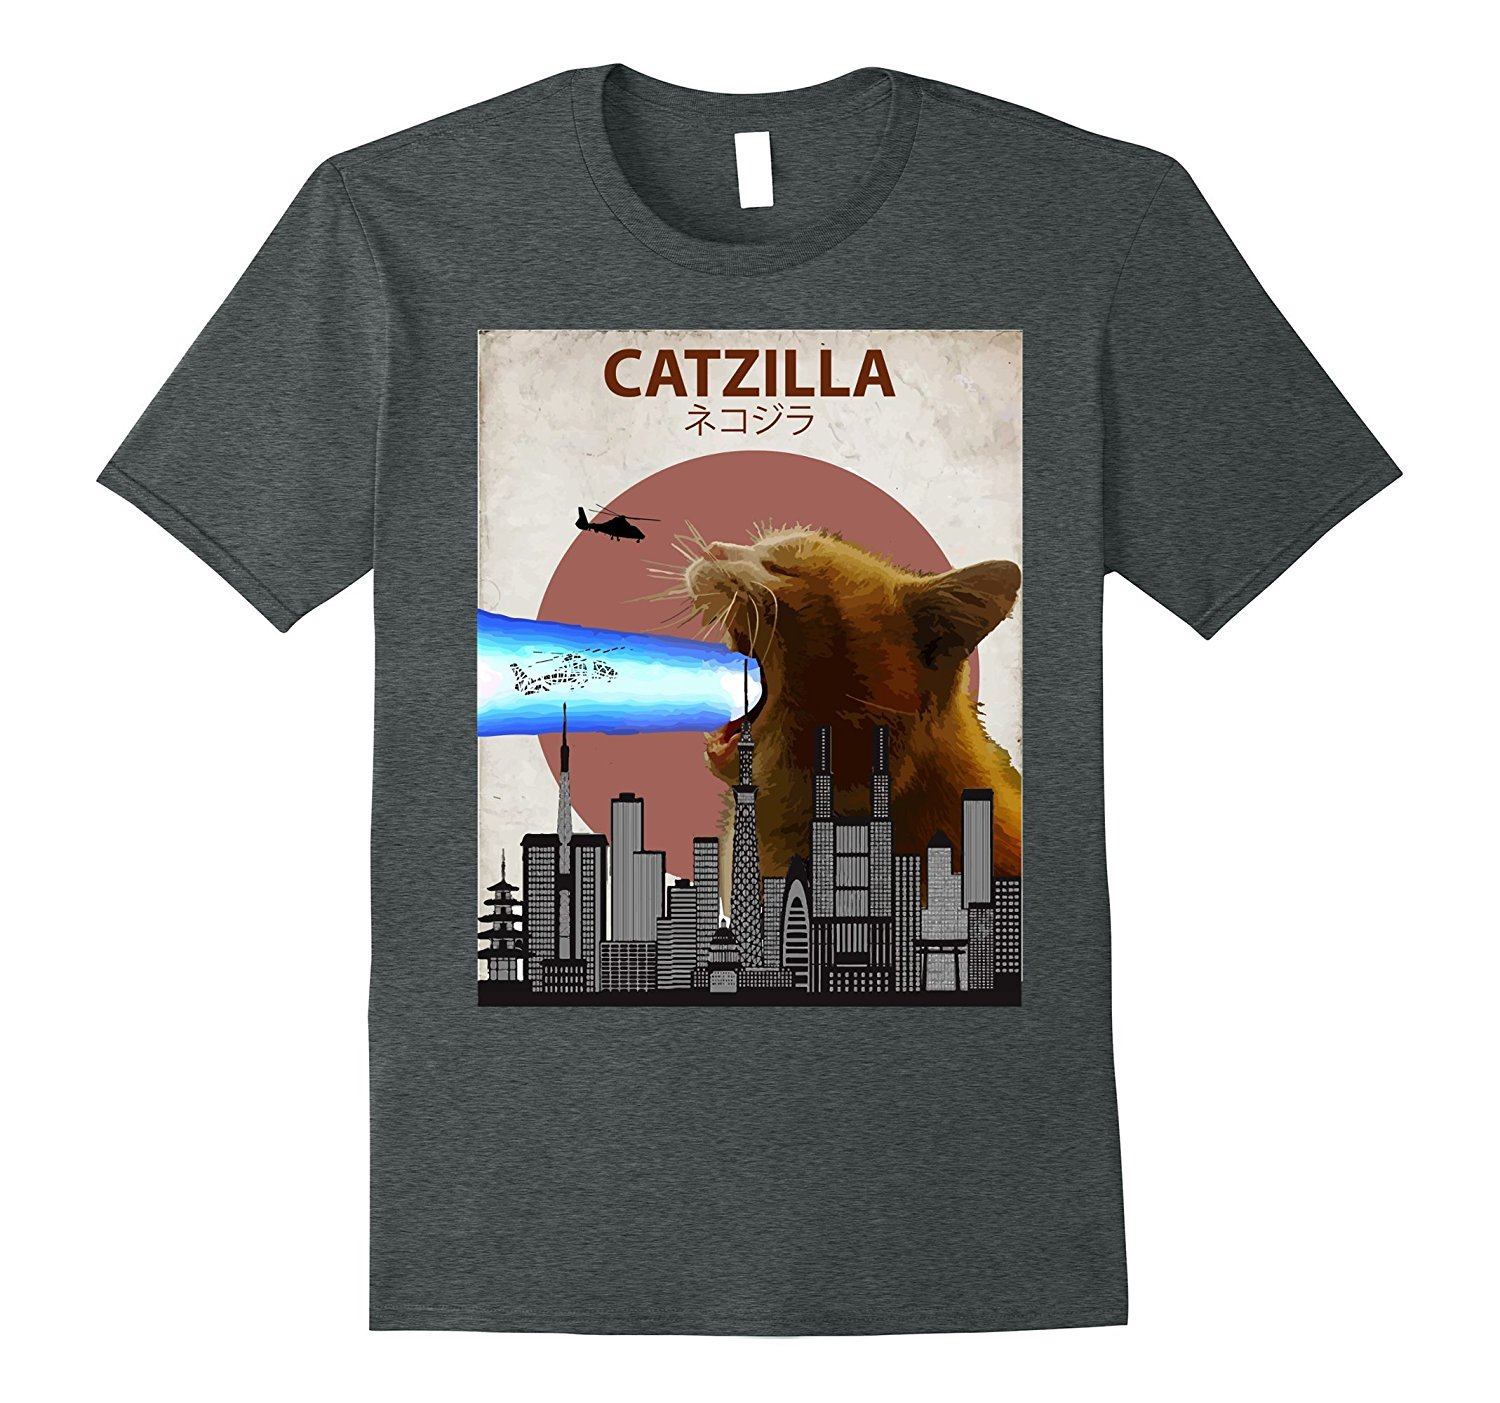 0abe42756 2018 Hot sale Fashion 100% cotton Catzilla Funny Cat T Shirt | Cute  Japanese Cat Lovers Gift Tee shirt-in T-Shirts from Men's Clothing on  Aliexpress.com ...